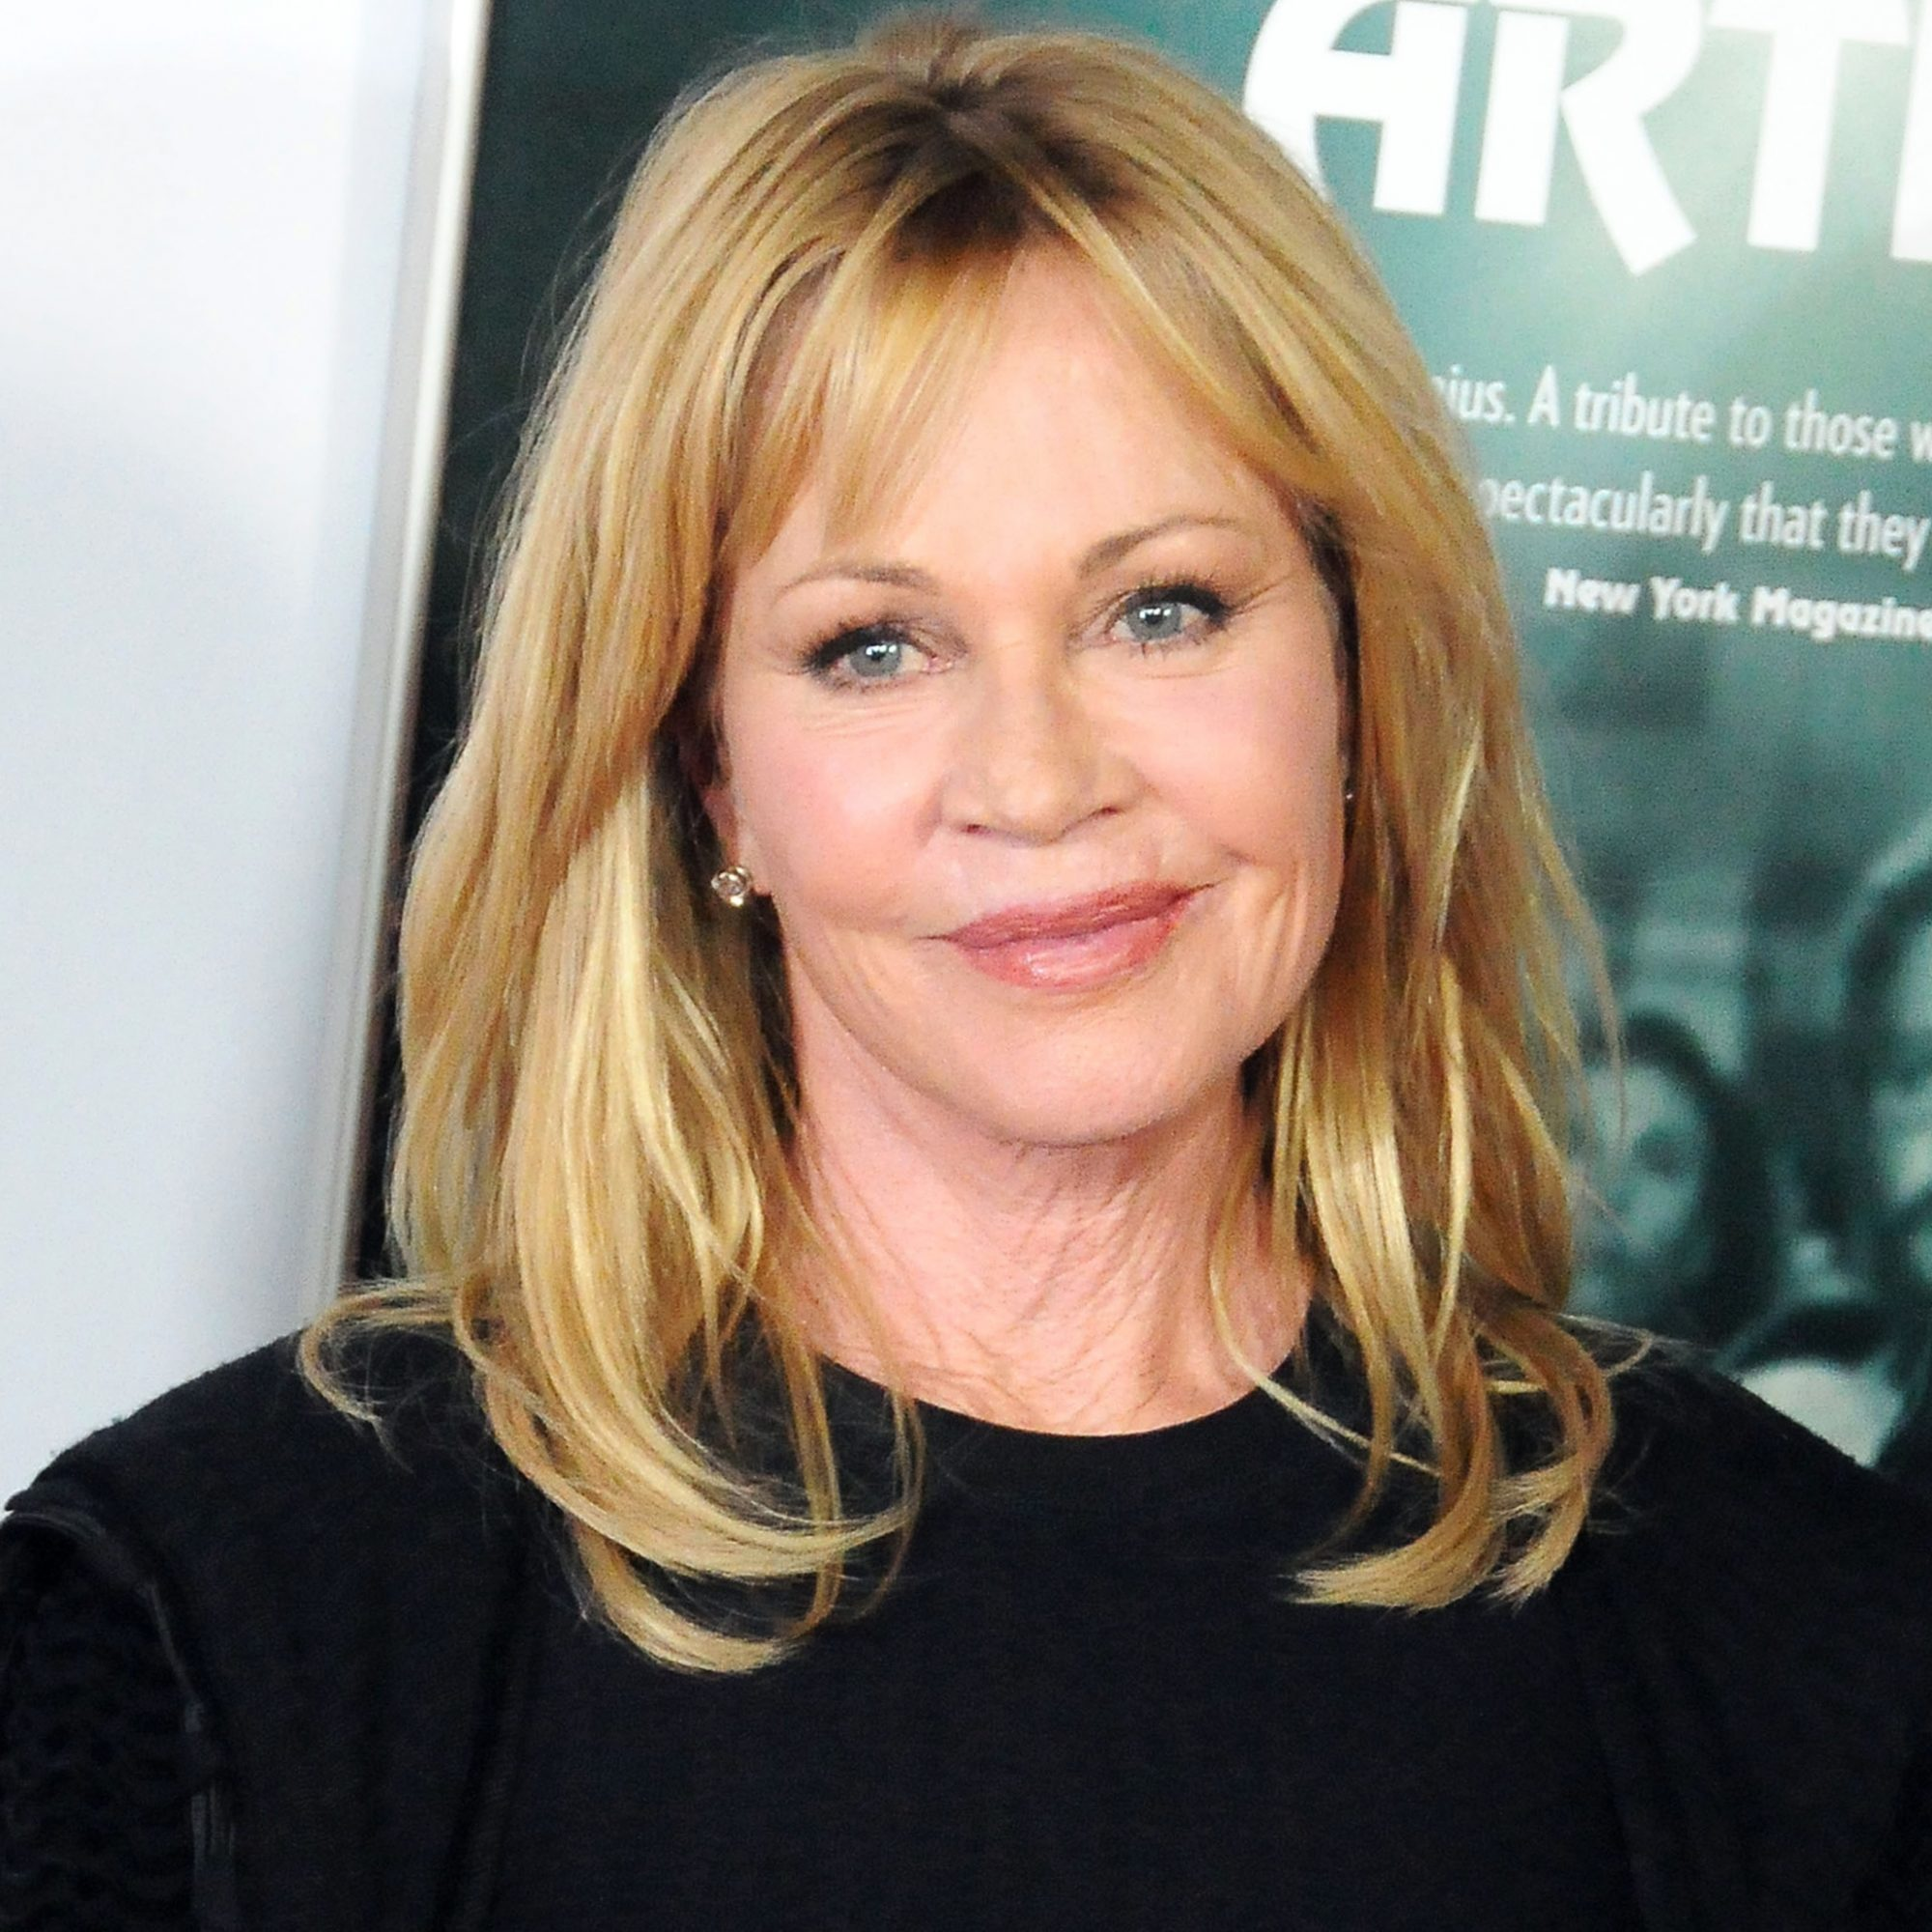 Celebs Who Revealed Health Issues in 2017 - Melanie Griffith